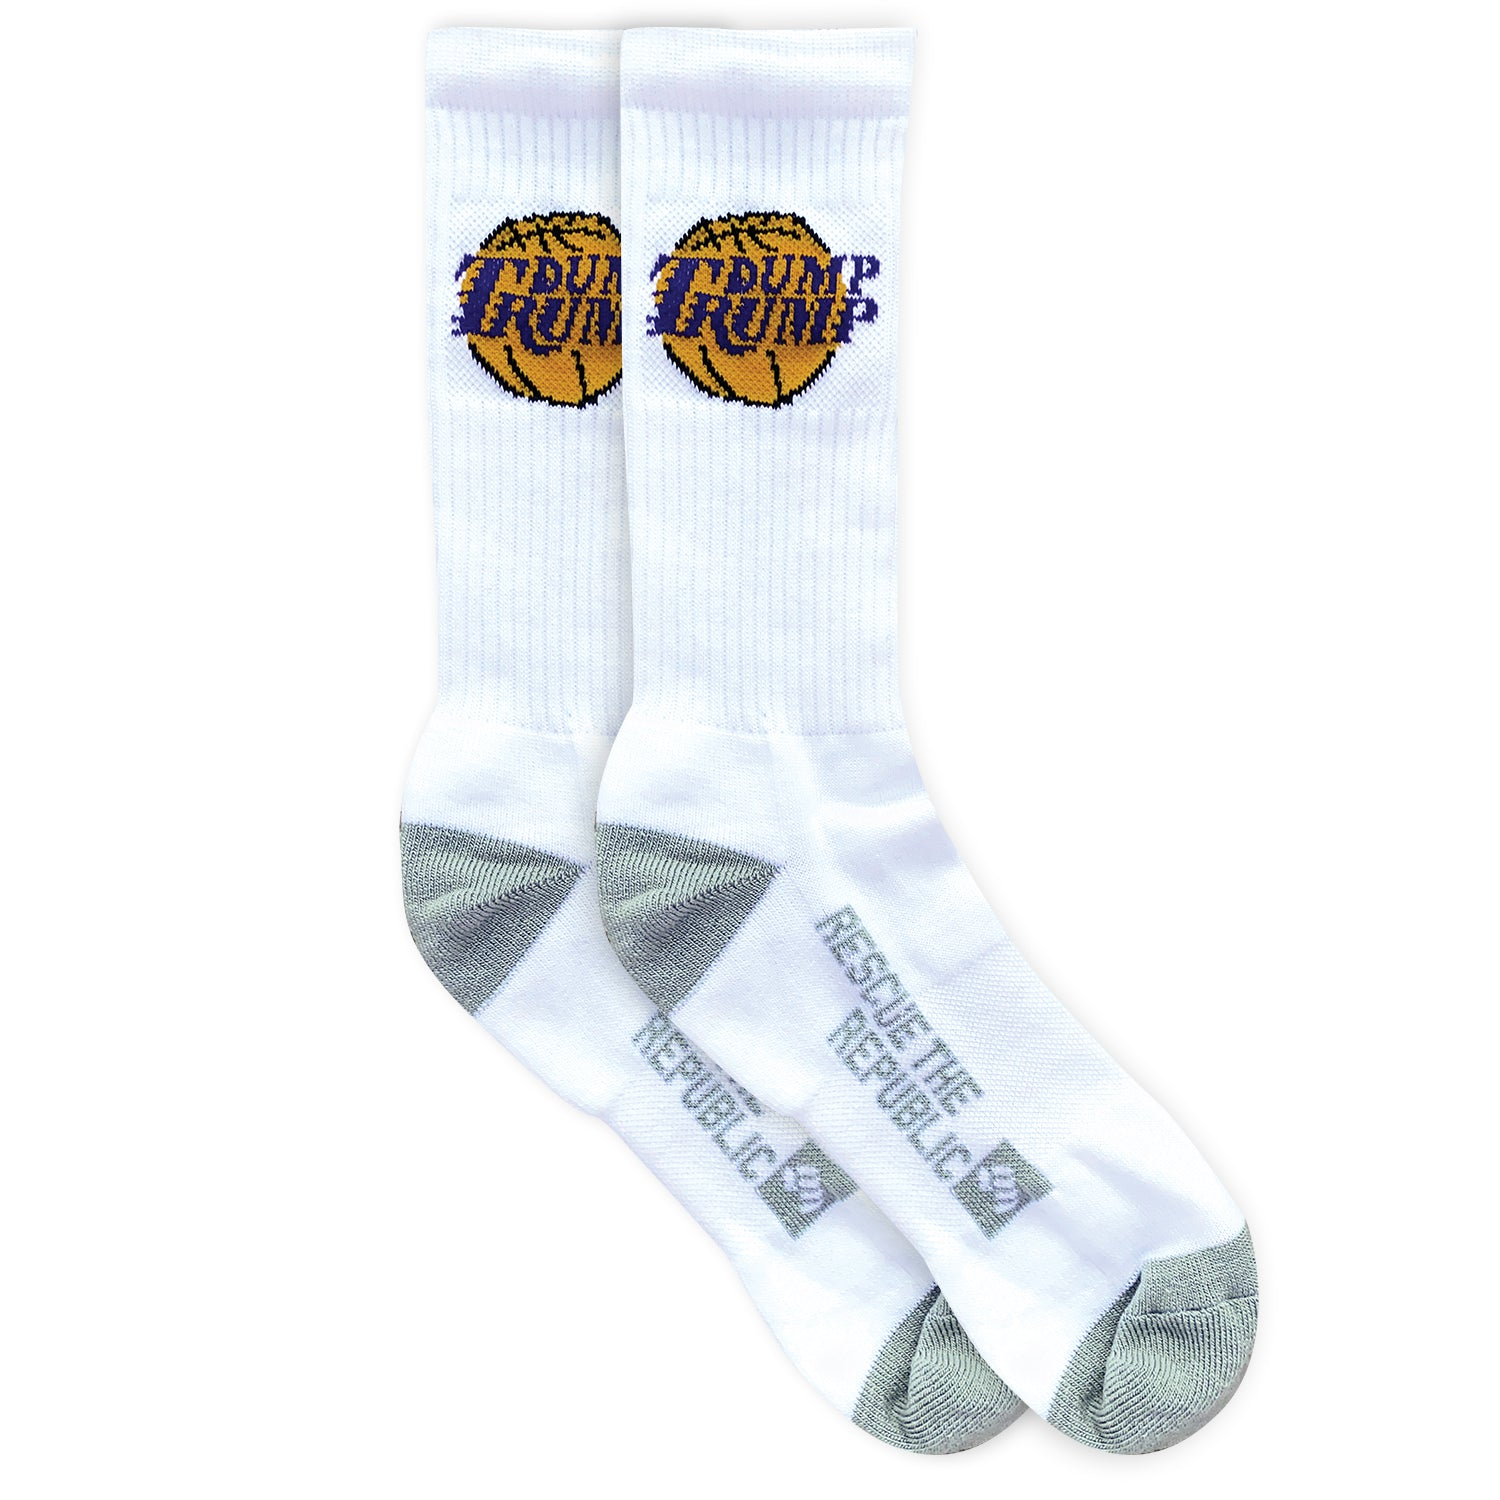 Dump Trump LA Hoops White Crew Socks